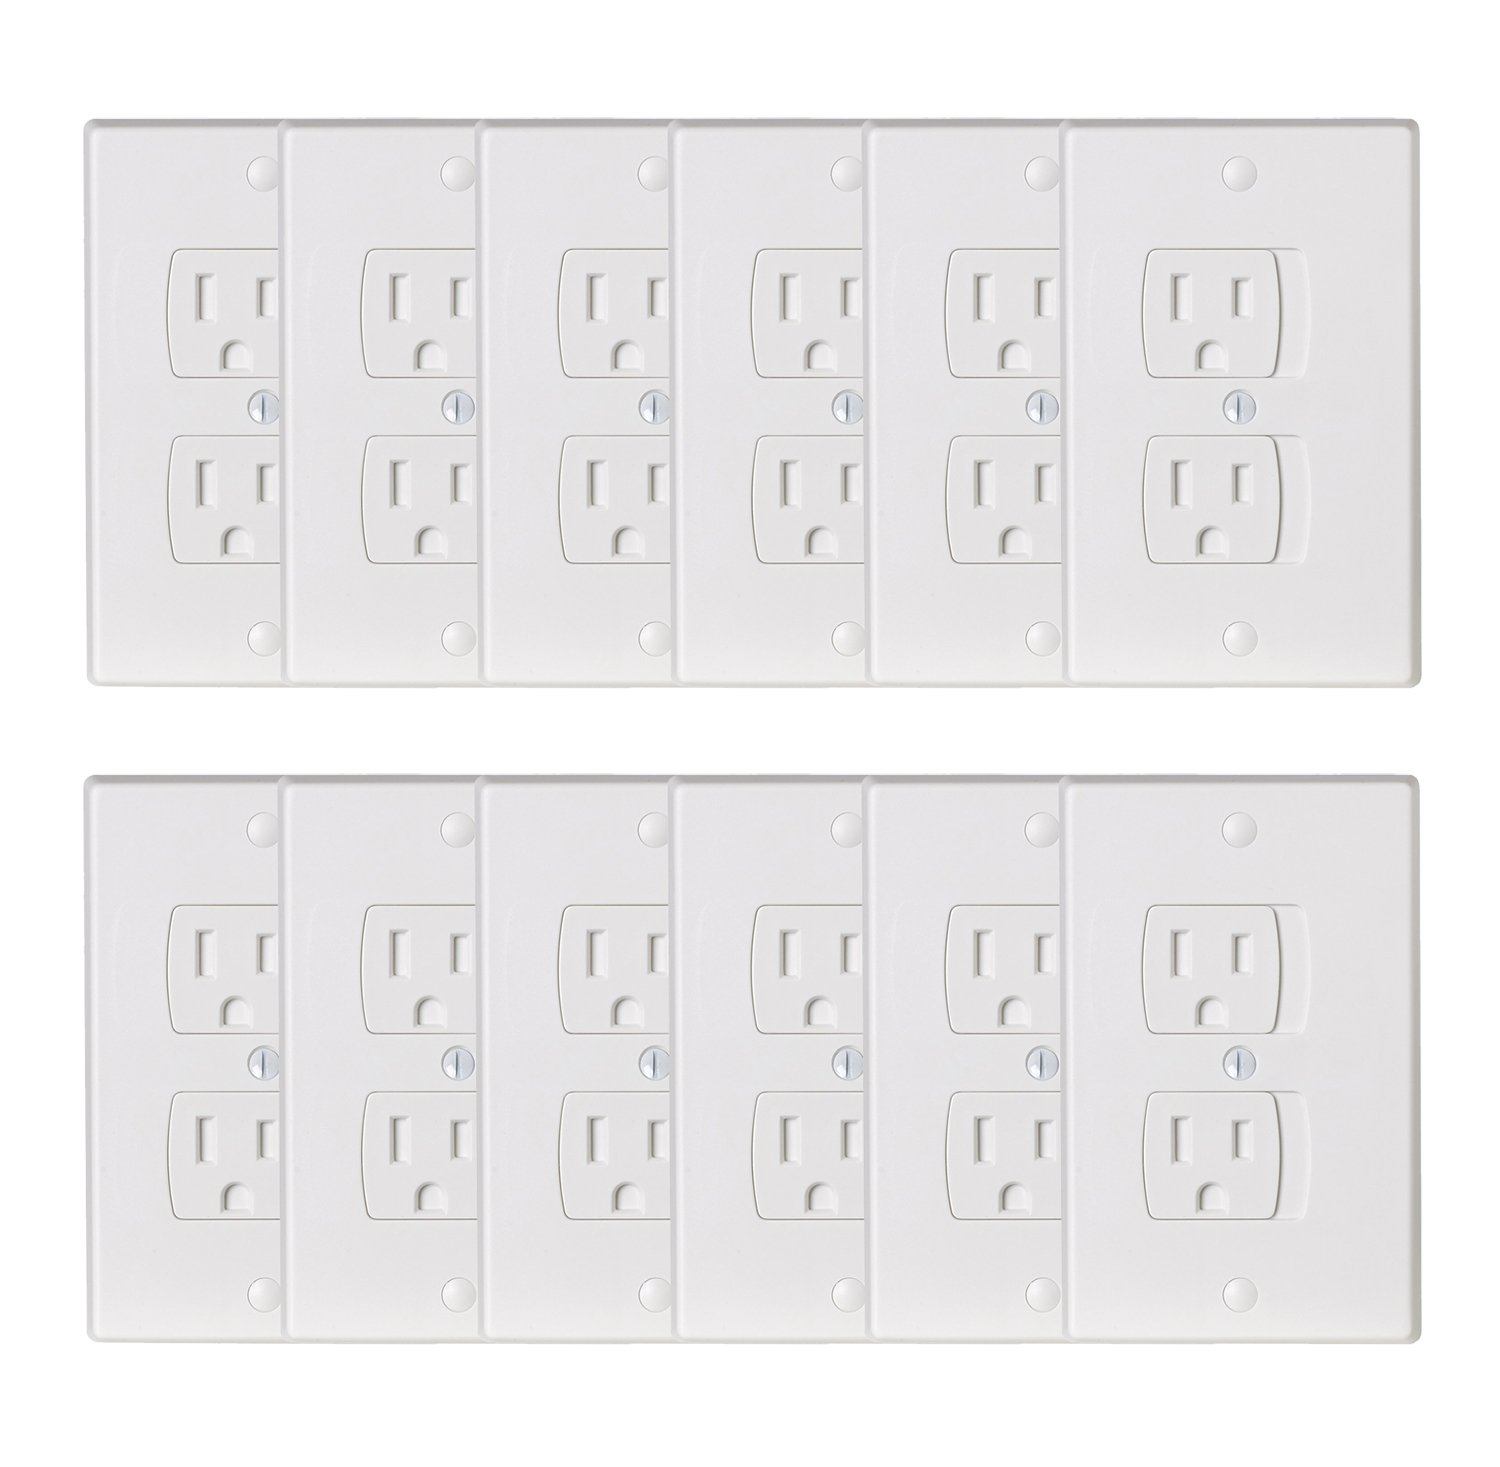 BUENAVO Universal Electrical Outlet Covers, Baby Safety Self-Closing Wall Socket Plugs Plate Alternate for Child Proofing, BPA Free (12 Pack)